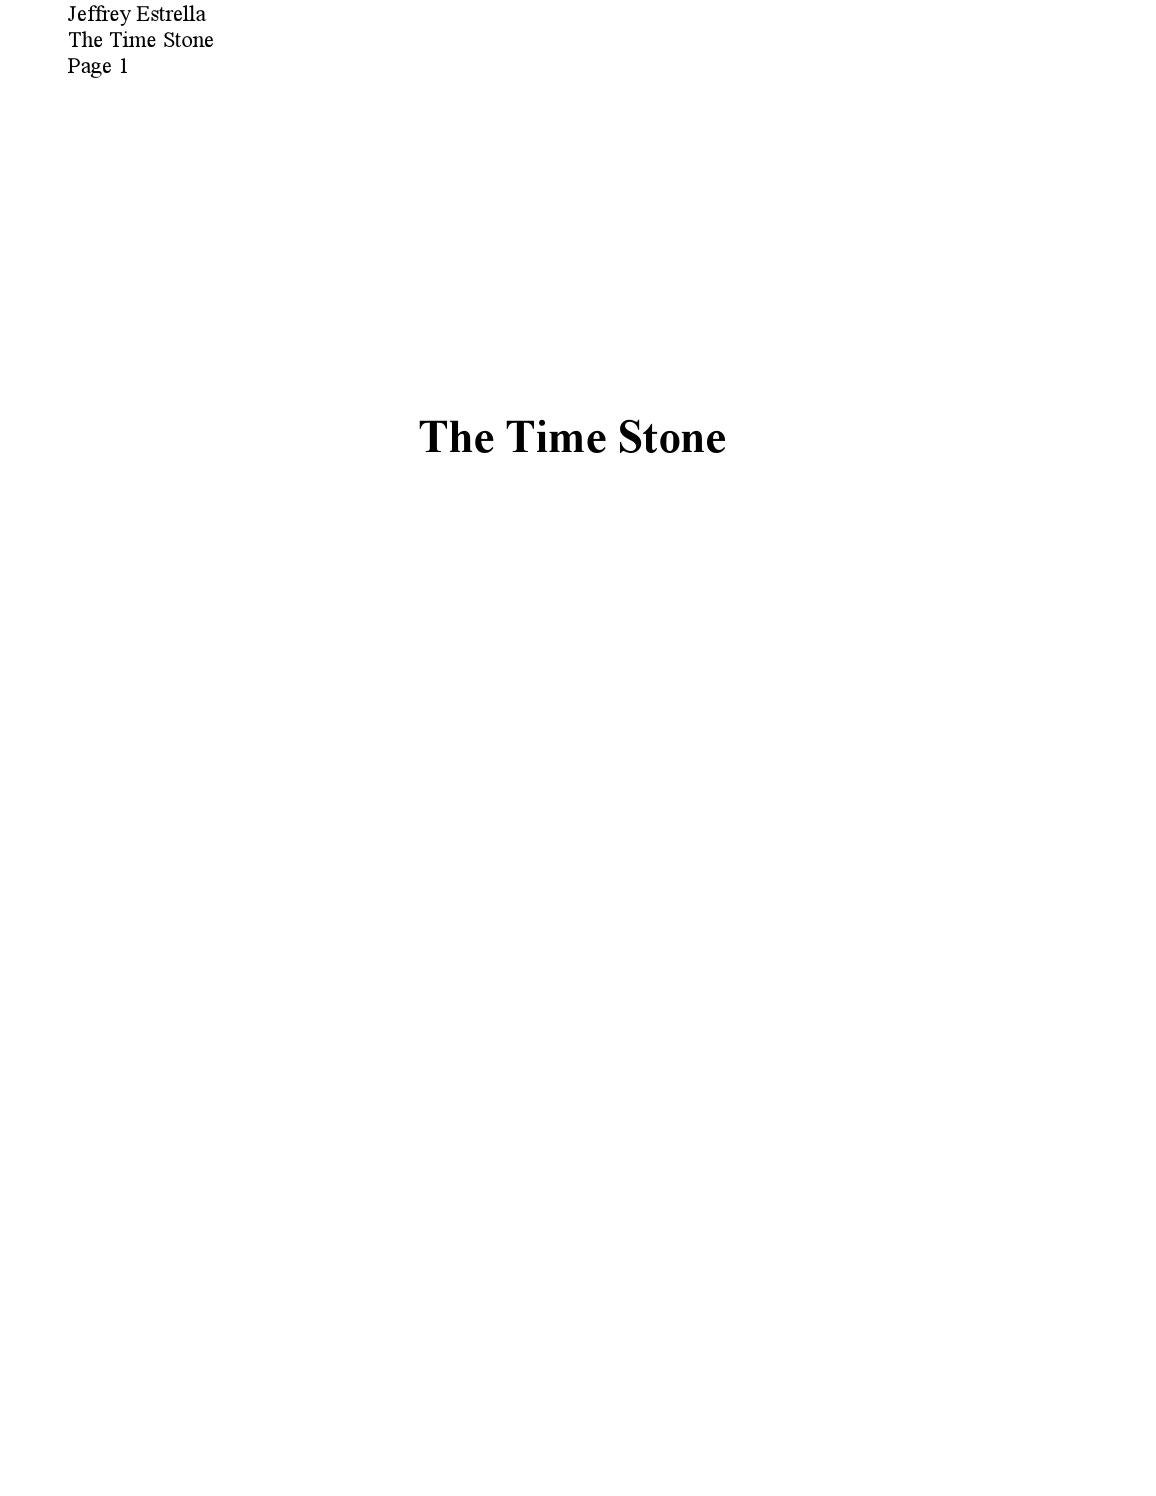 271e2d1165a294 The time stone by The Time Stone - issuu